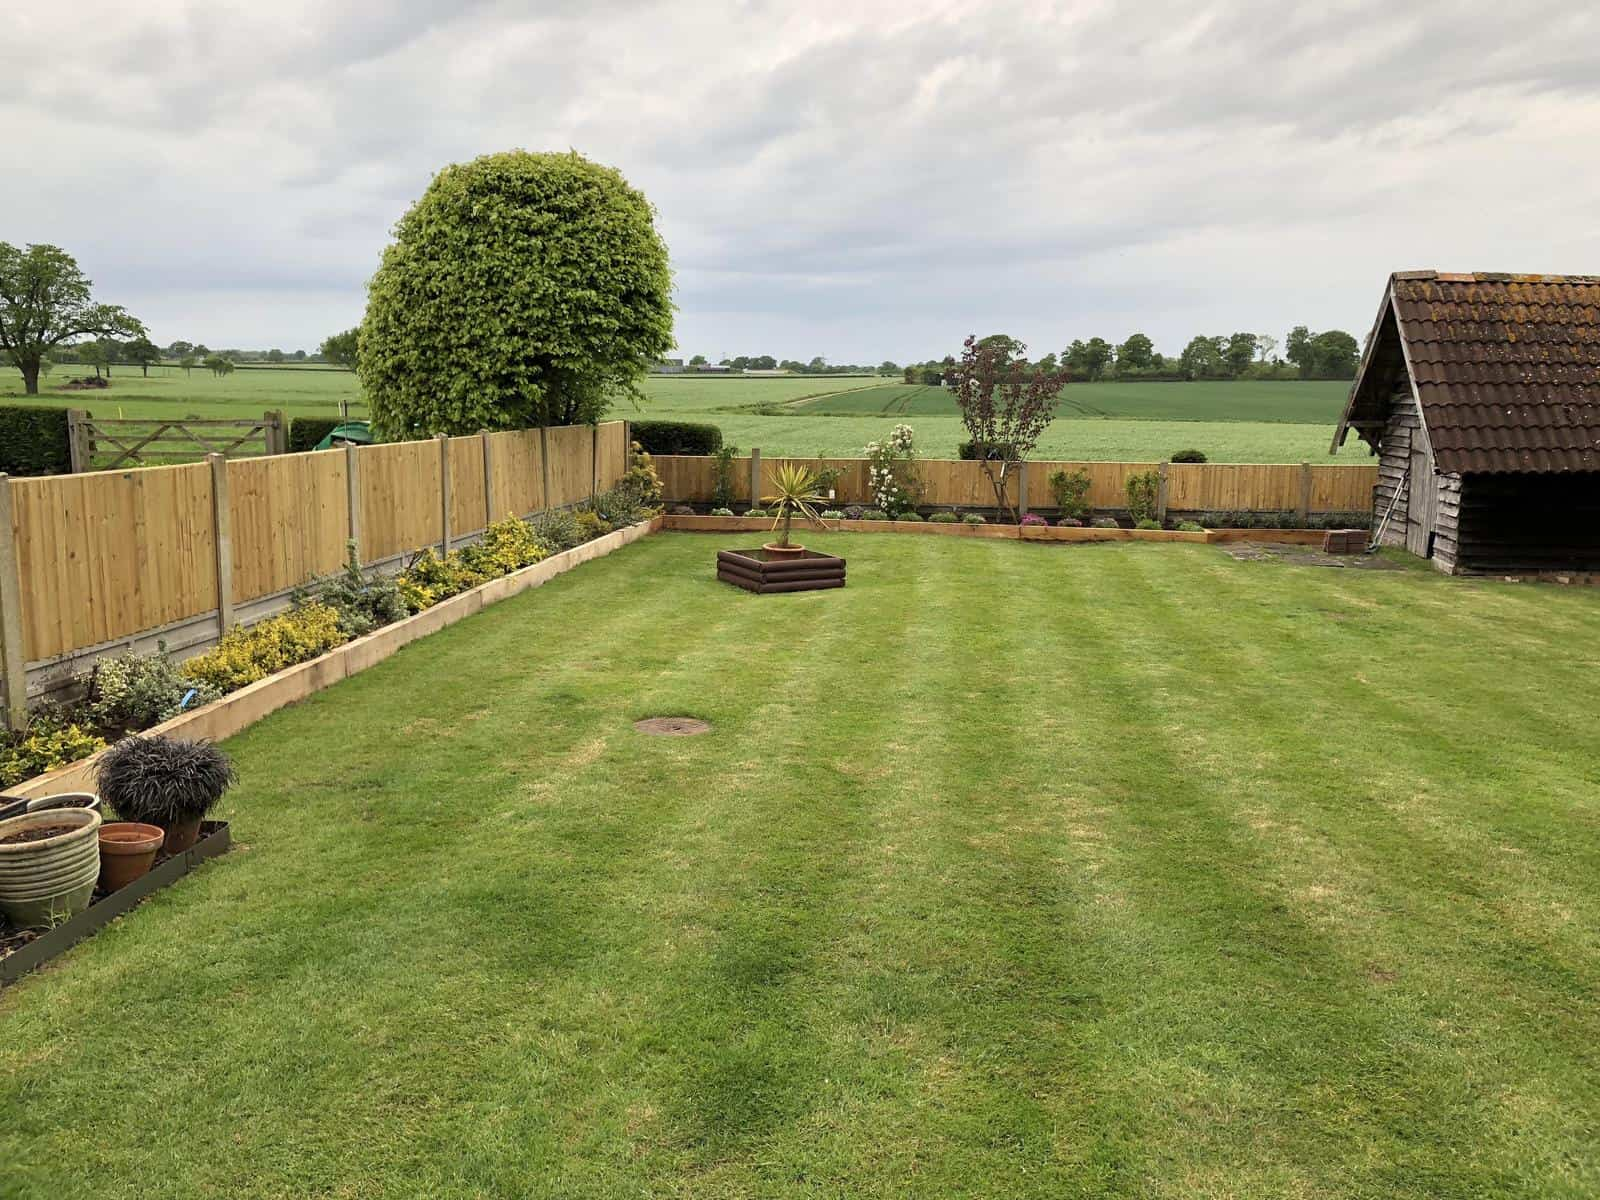 Garden borders, fences and plants updated